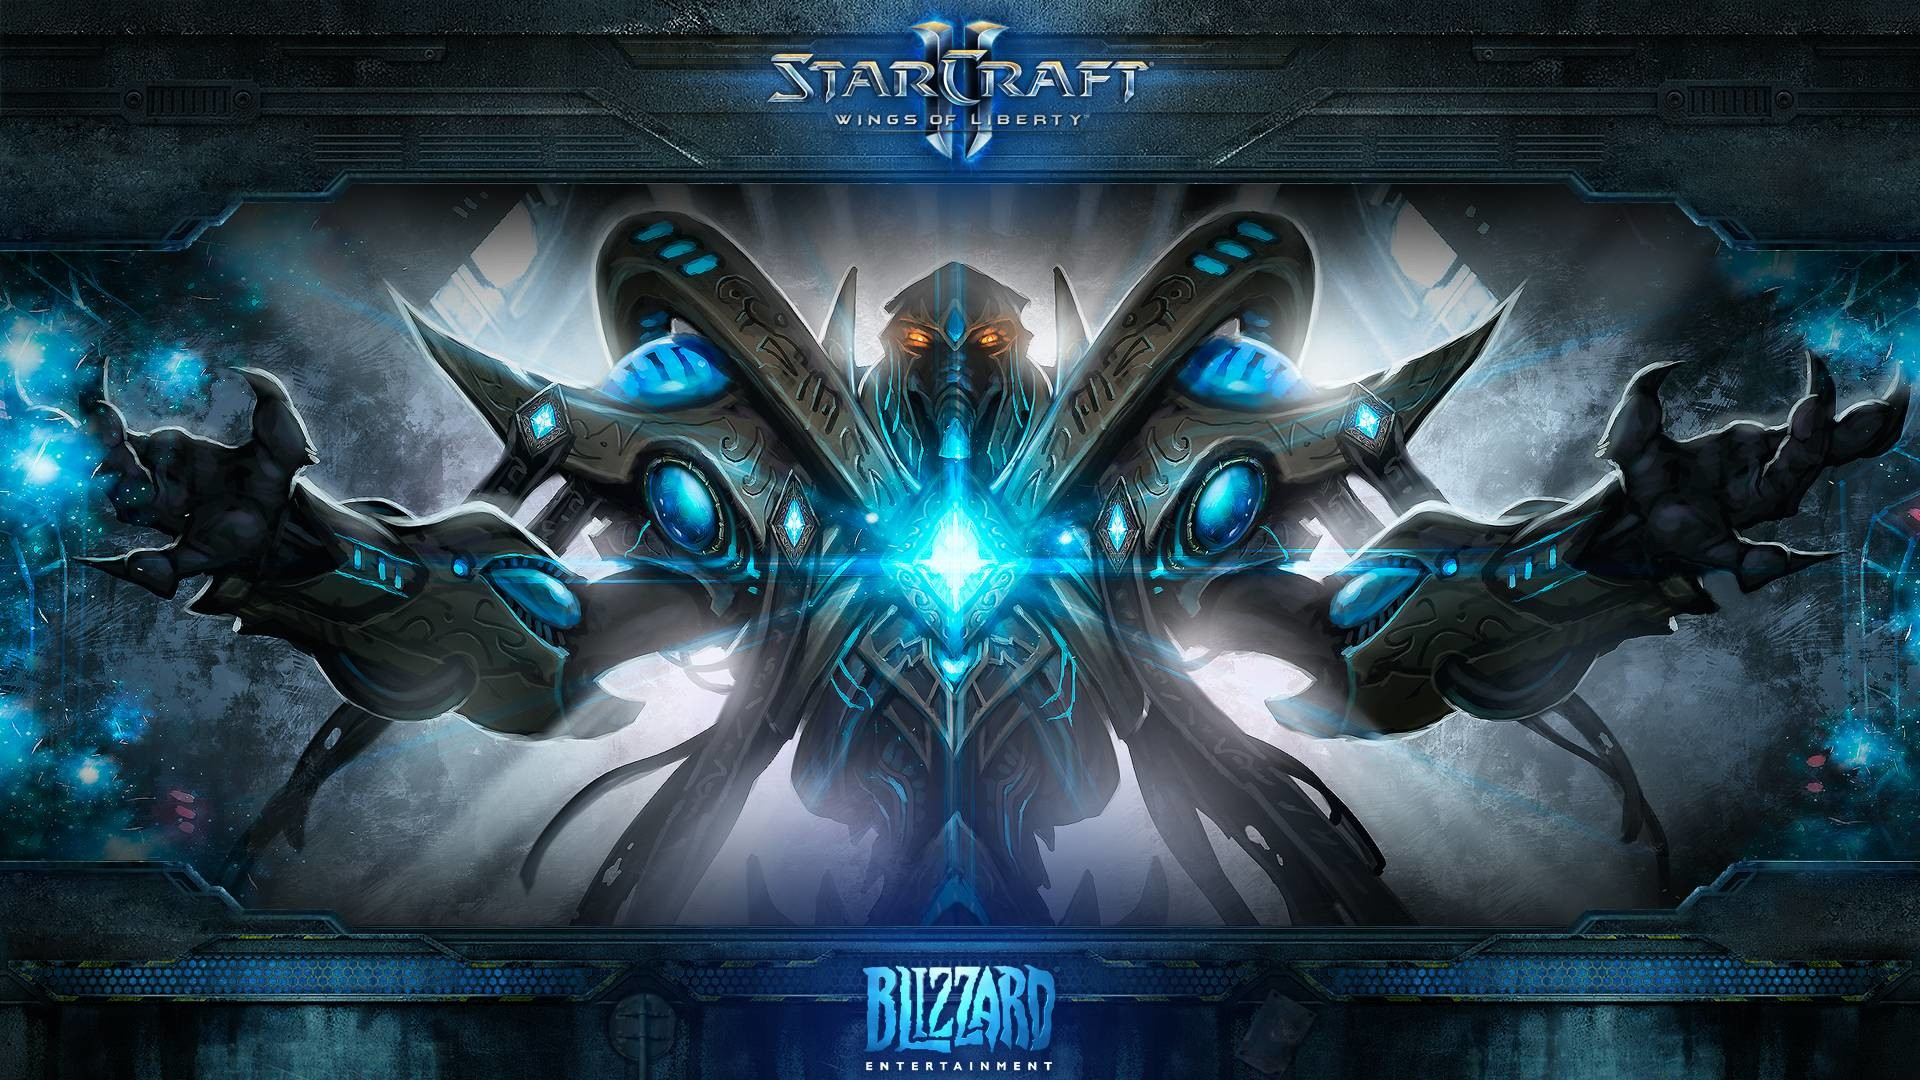 Starcraft 2 HD Wallpapers 83 images 1920x1080